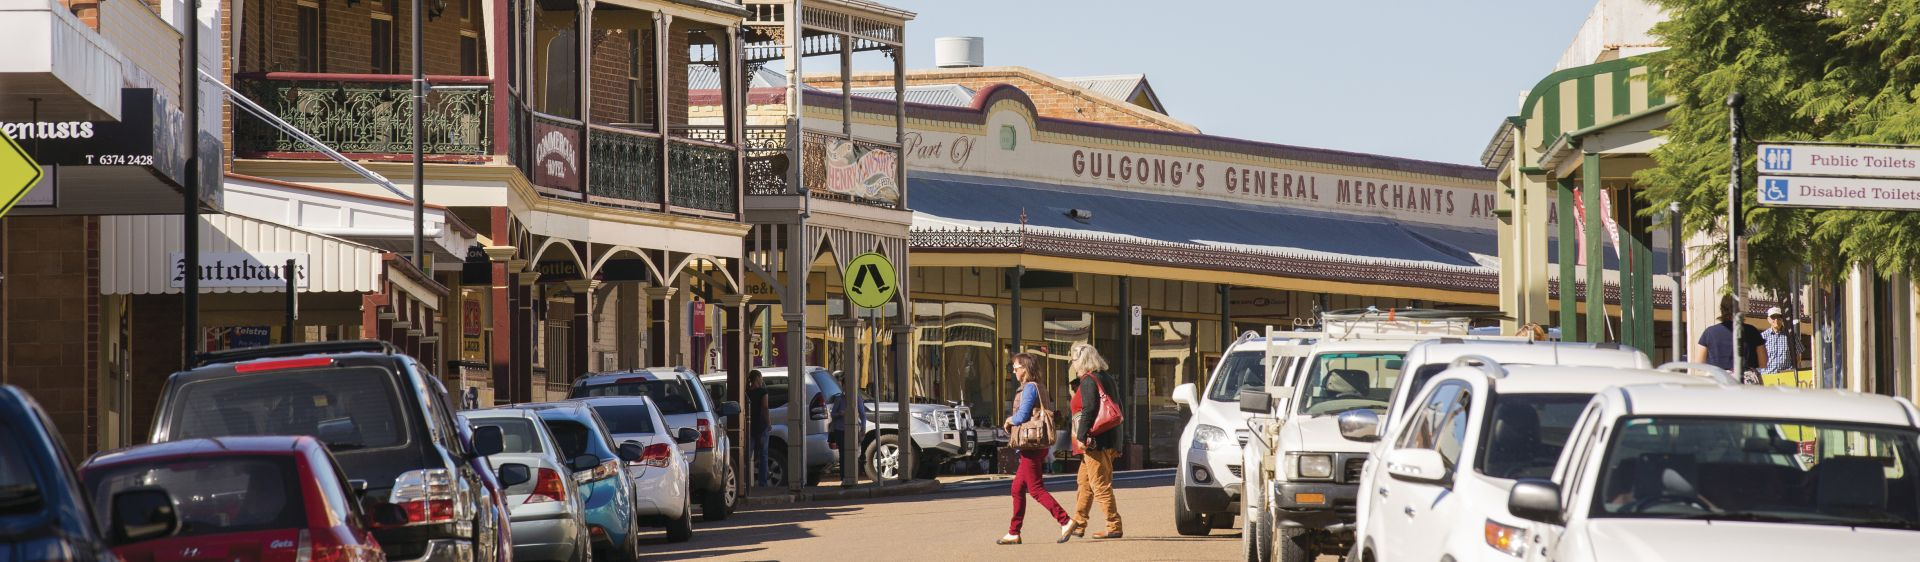 A beautiful heritage streetscape in Gulgong, Mudgee wine region